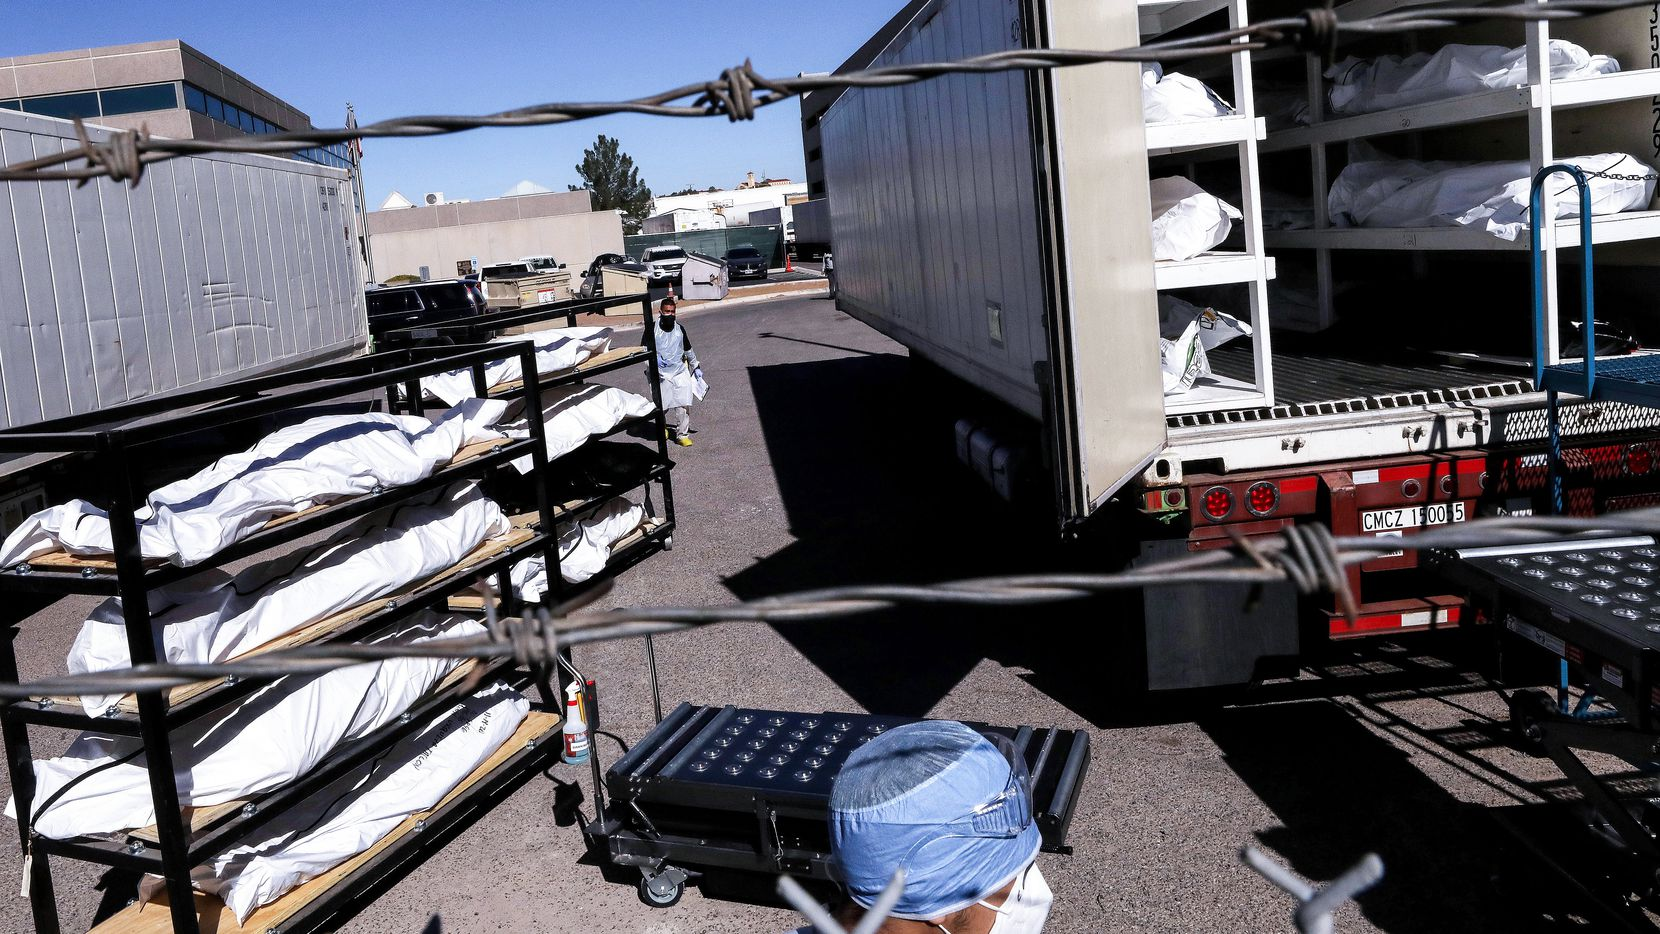 A worker prepares corpses for refrigeration trailers that served as temporary morgues in El Paso County during the darkest days of the pandemic.